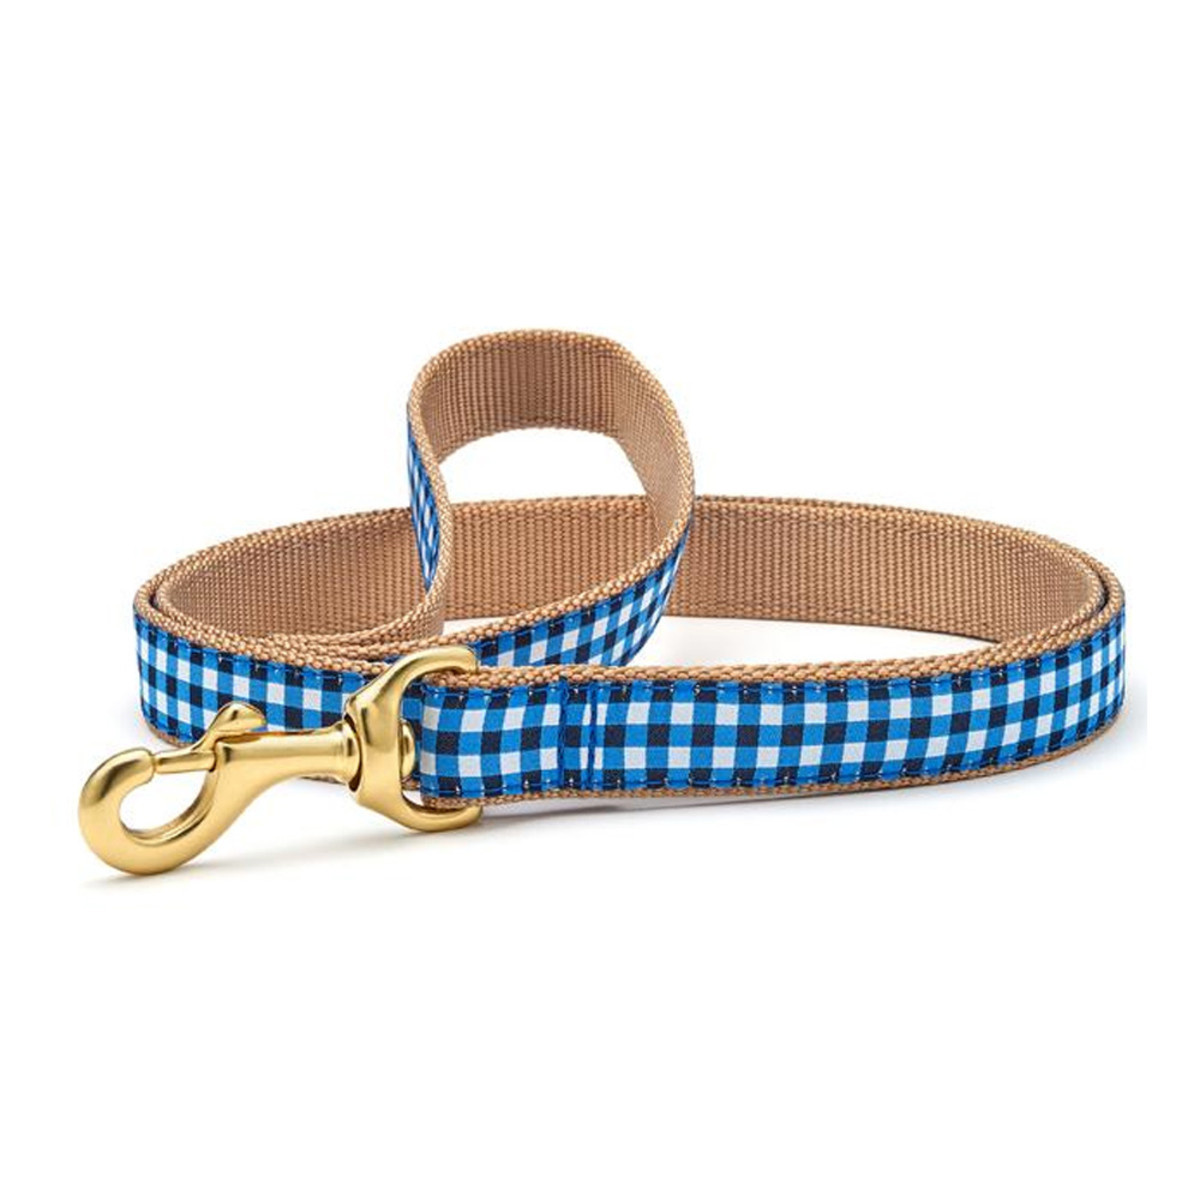 Up Country Navy Gingham Leash 6'